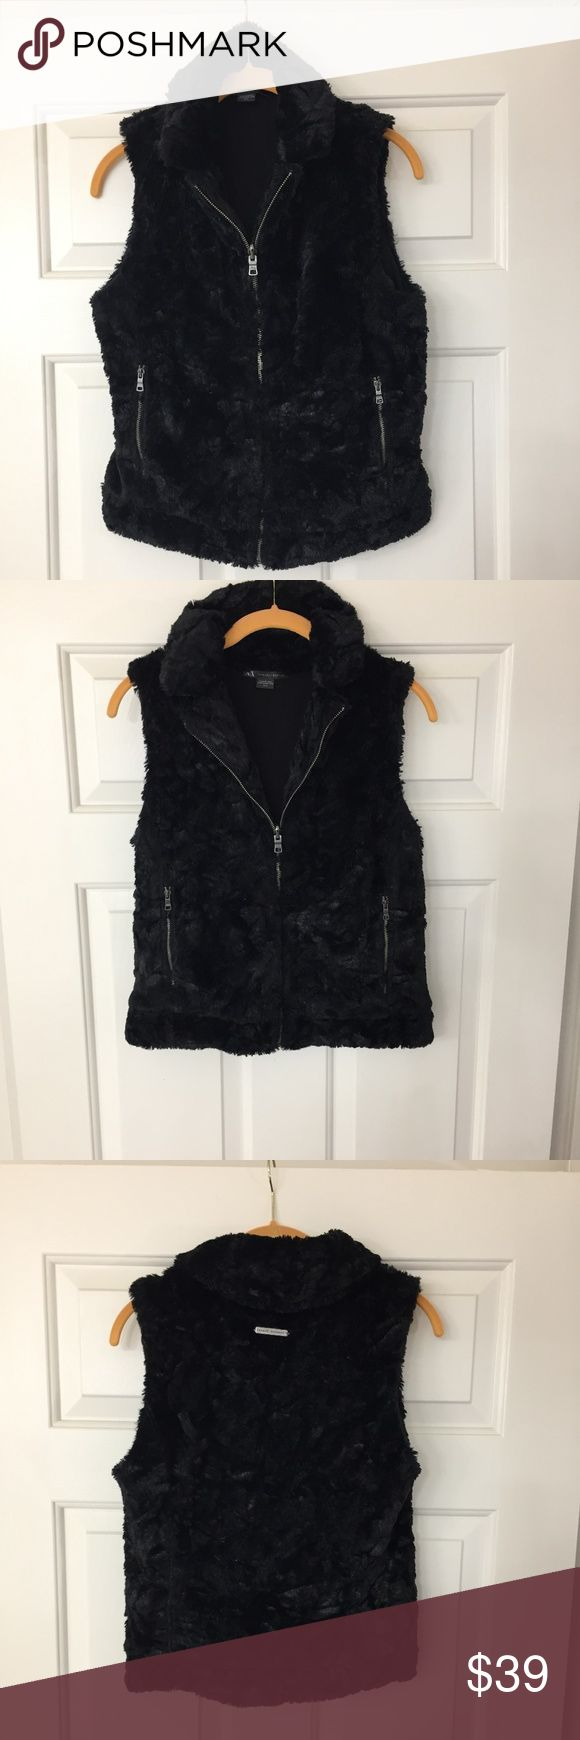 PRICE REDUCED-Armani Exchange Reversible BlackVest This Armani Exchange Reversible Black Faux Fur Vest is in Excellent Used Condition (EUC). Size Medium. It has 2 side zip pockets on the fur side and 2 side pockets on the reversible side too. The vest is 20.5 inches long back and the front is the same length. It's gorgeous waist line, flattering, and warm vest. Armani Exchange Jackets & Coats Vests